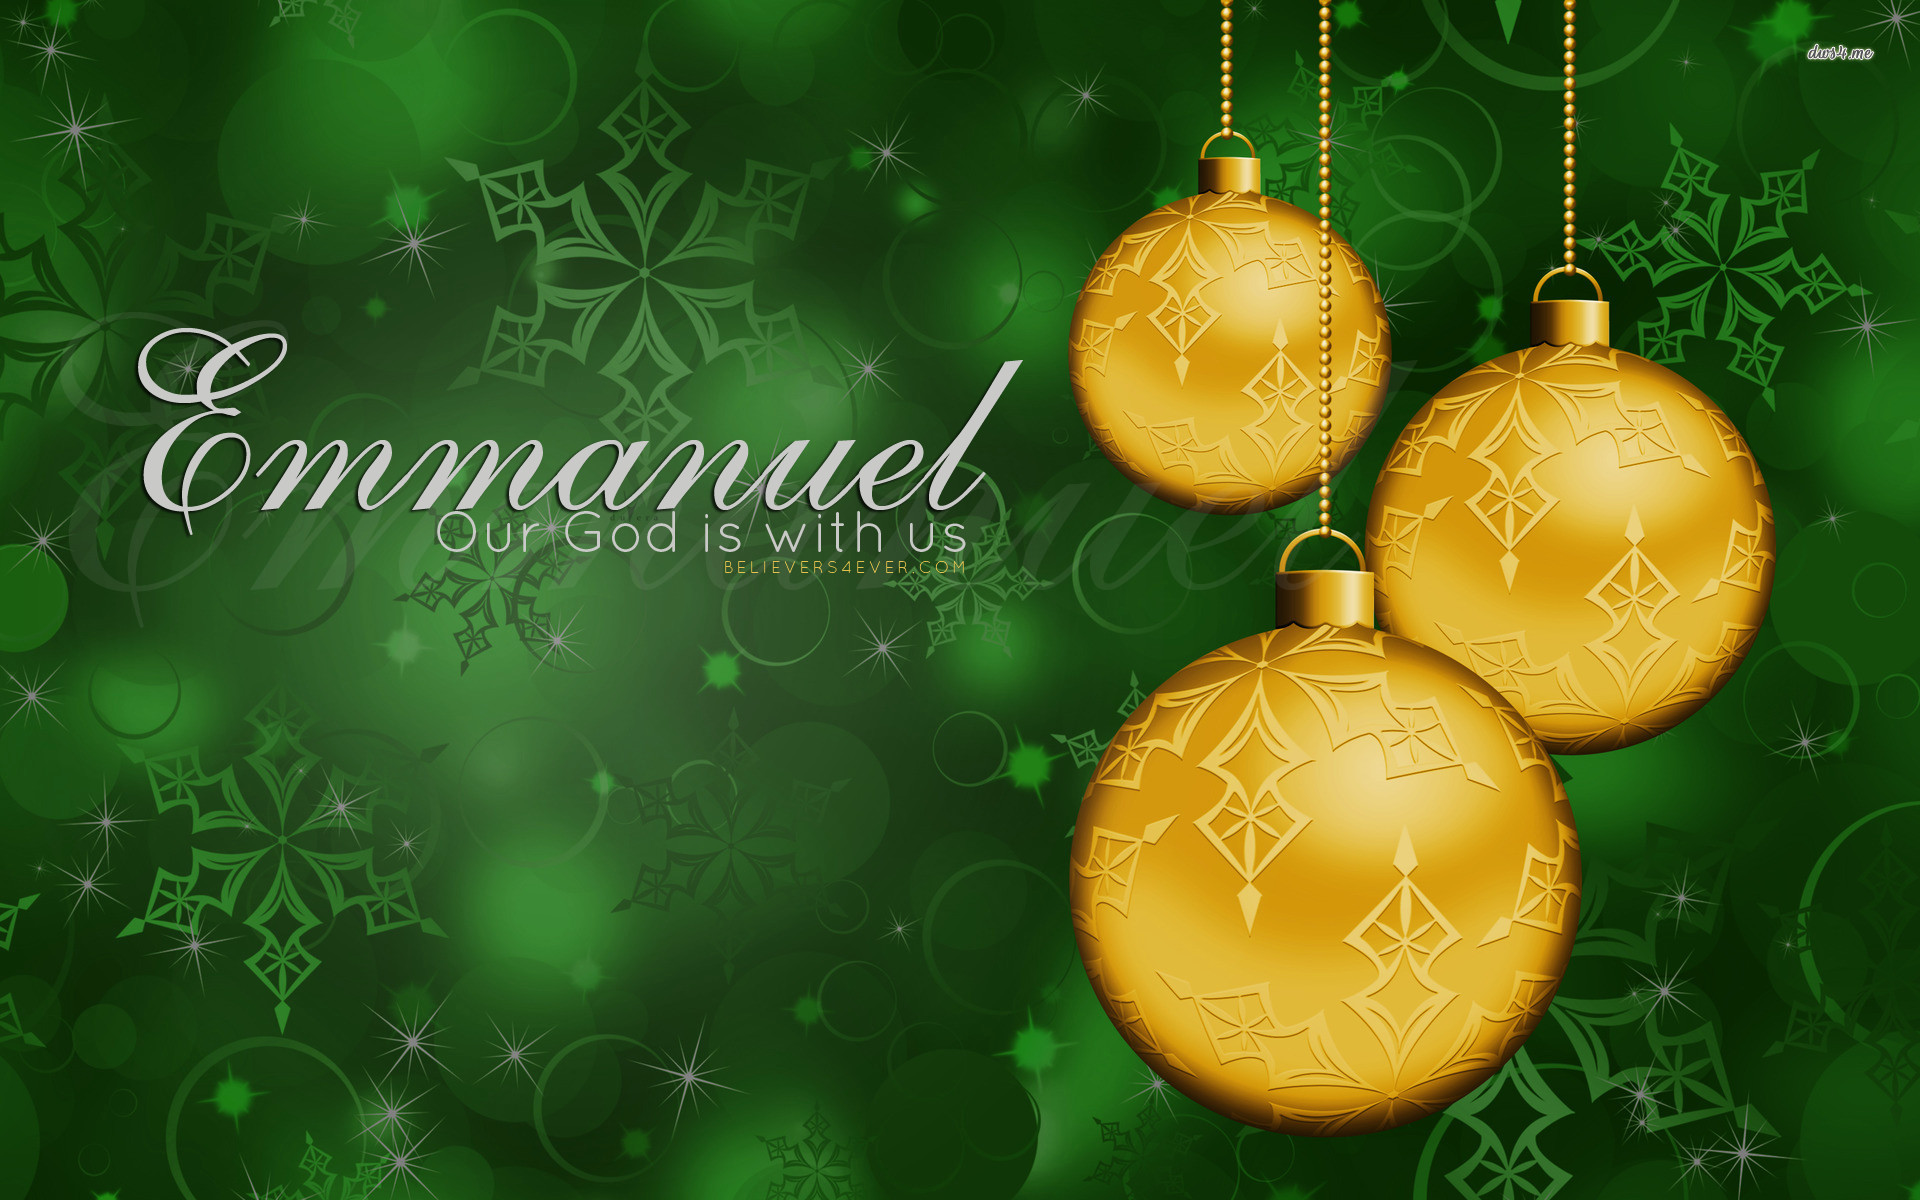 1028321 vertical christian christmas wallpaper 1920x1200 for iphone 7